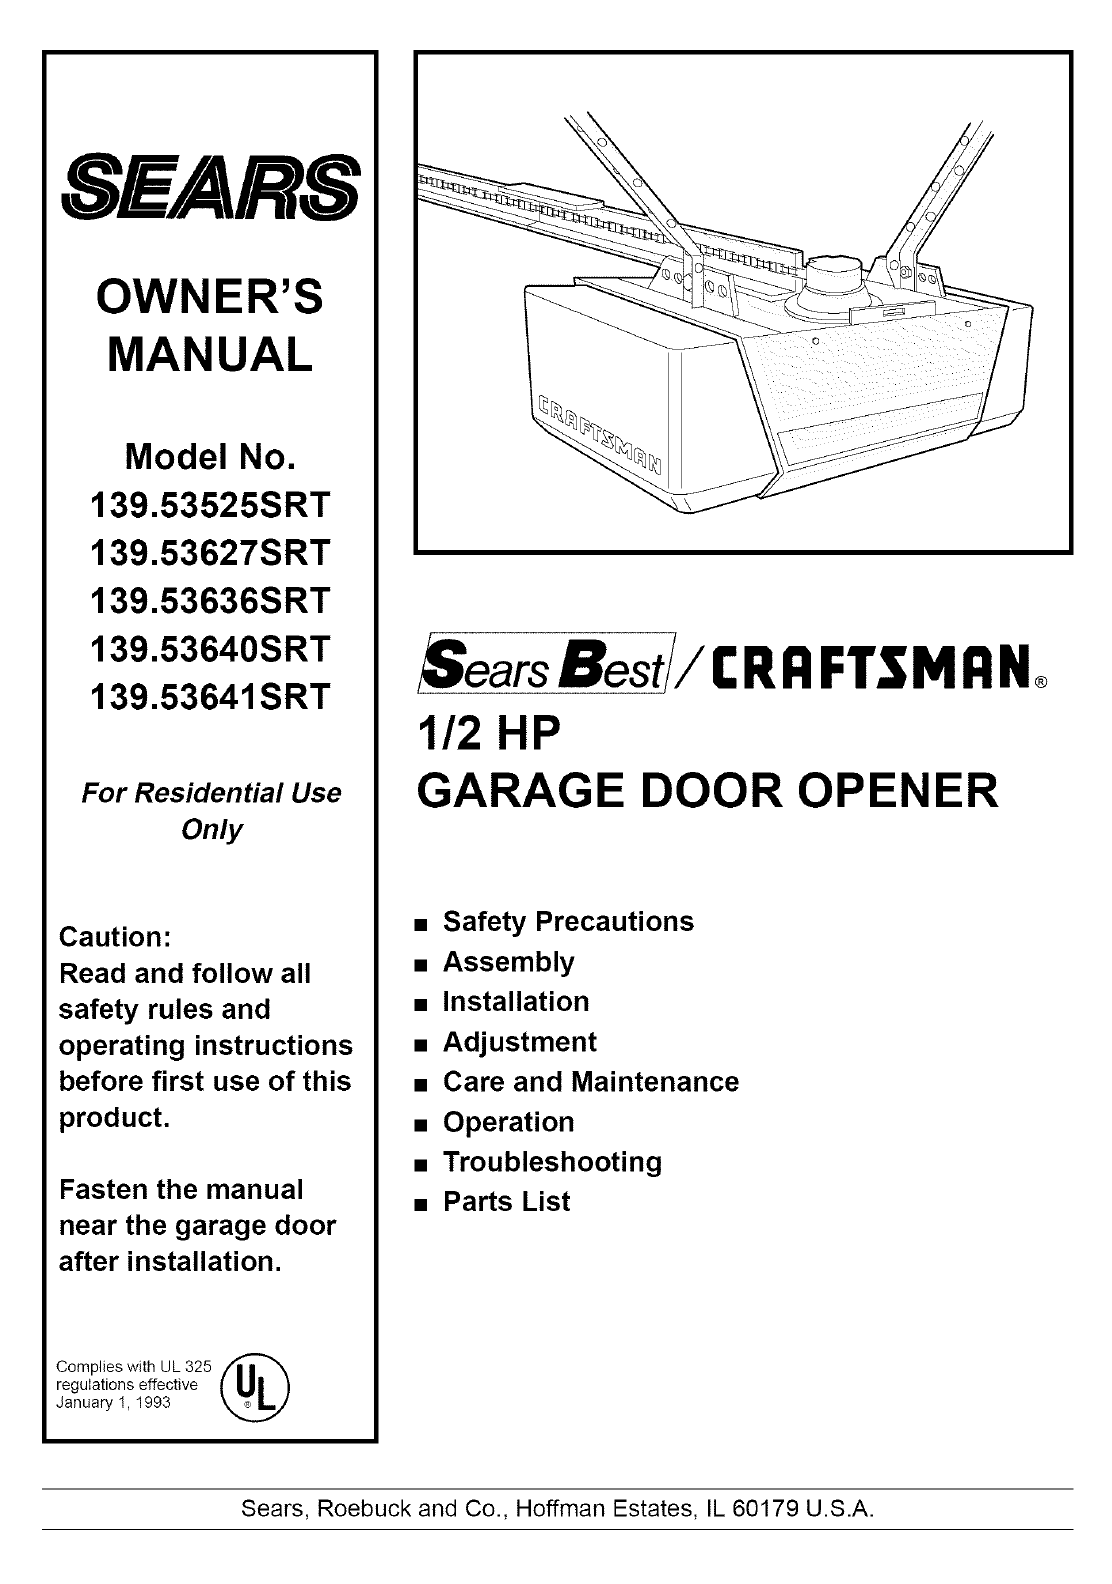 Sears Garage Door Opener 13953640srt User Guide Manualsonline